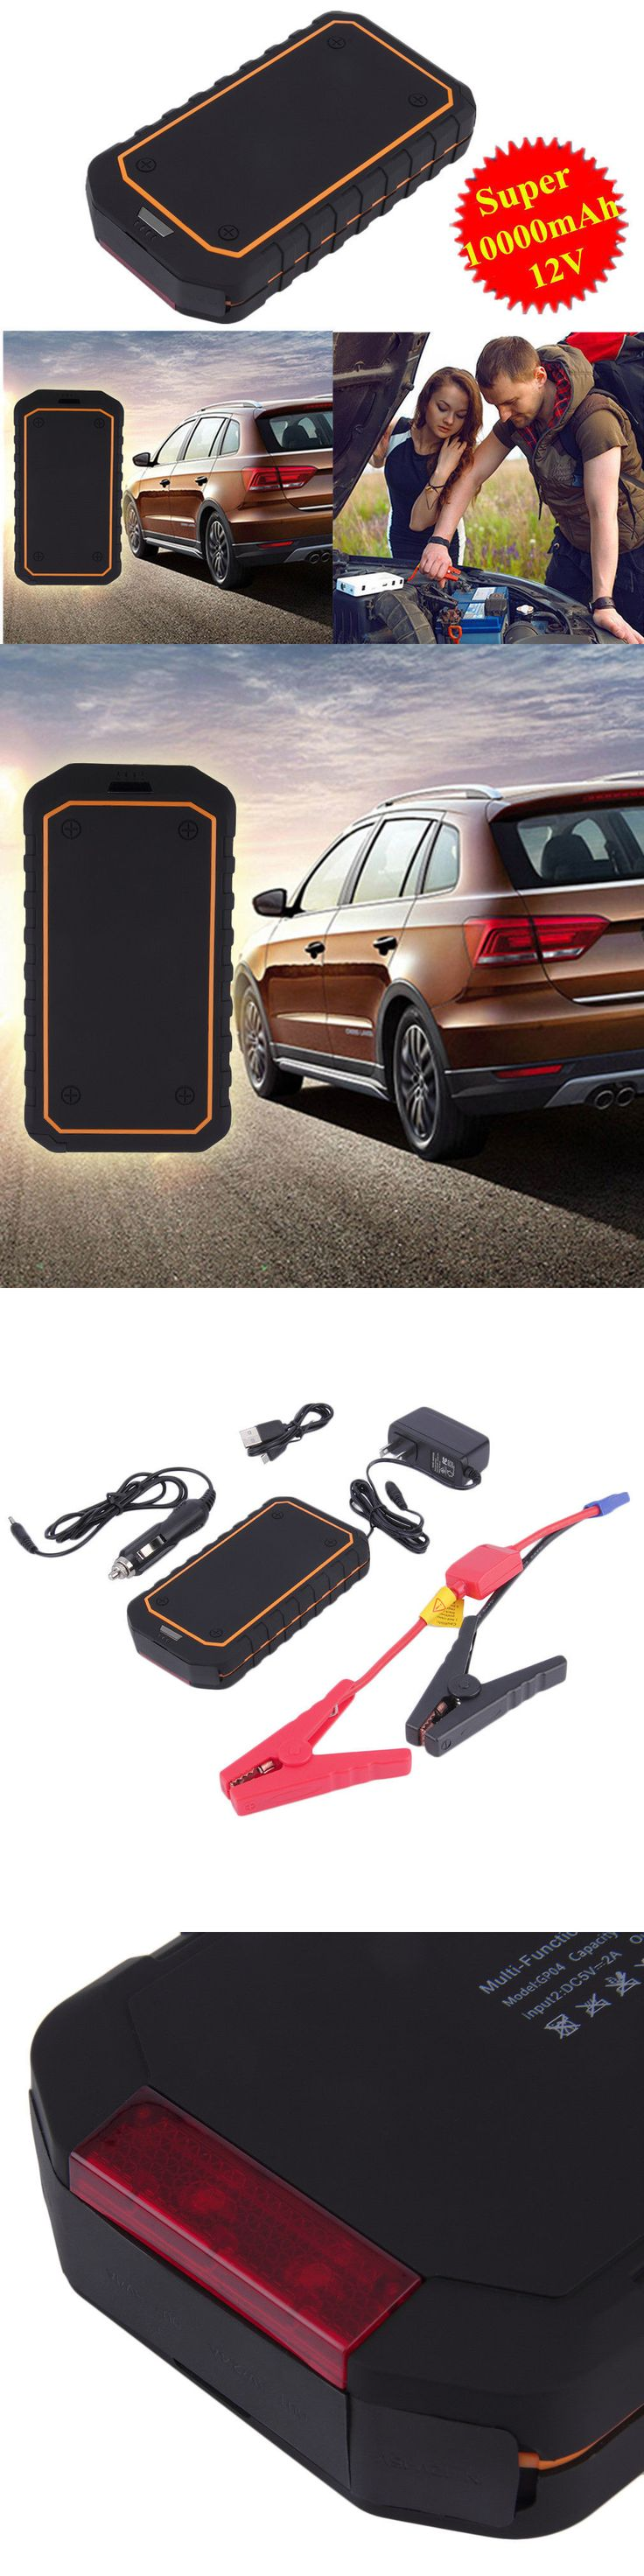 Multipurpose ac to dc adapters 100000mah portable car auto jump starter battery charger power bank